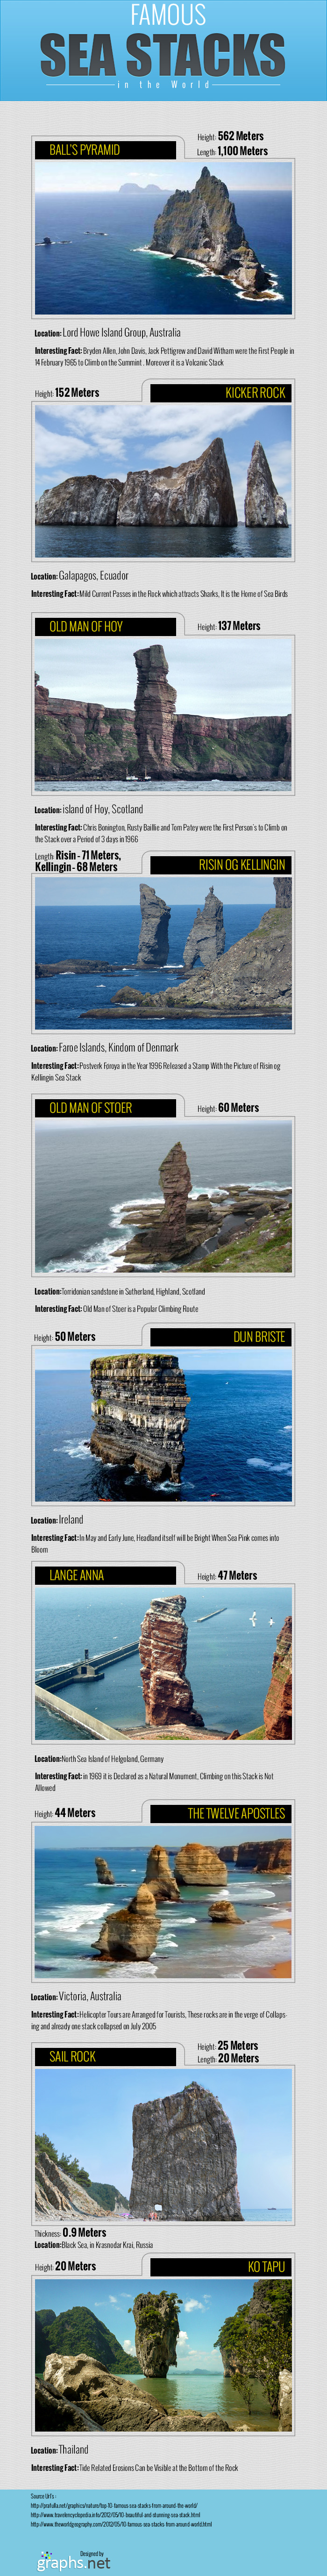 Famous Sea Stacks in the World